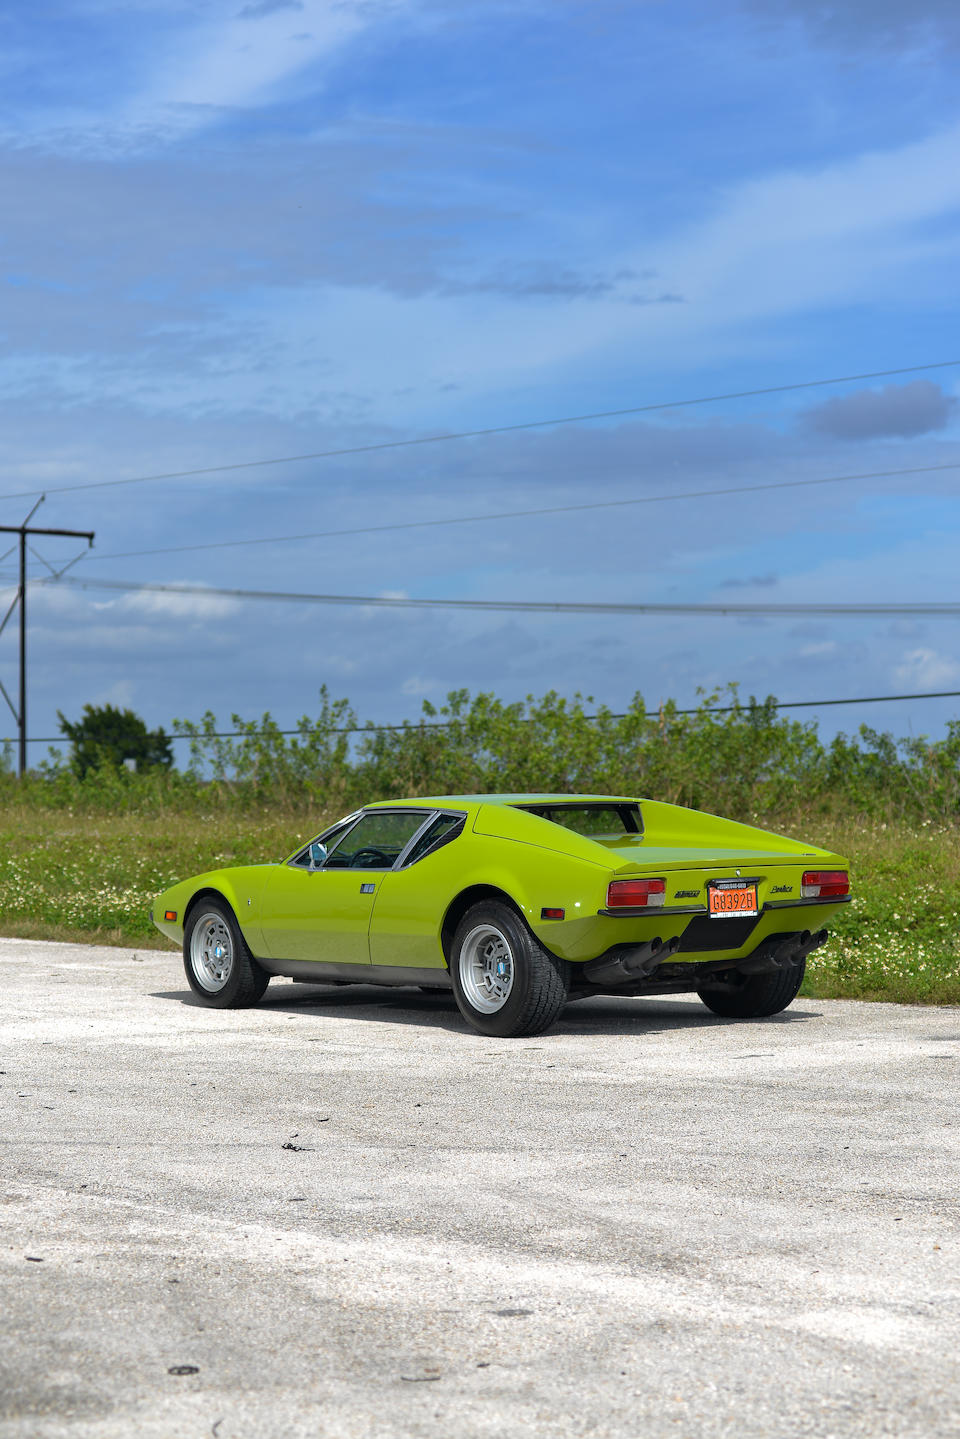 <B>1971 DeTOMASO PANTERA<br /><br />Design by Carrozzeria Ghia<br /></B><BR />Chassis no. THPNLS01992<BR />Engine no. 87400928